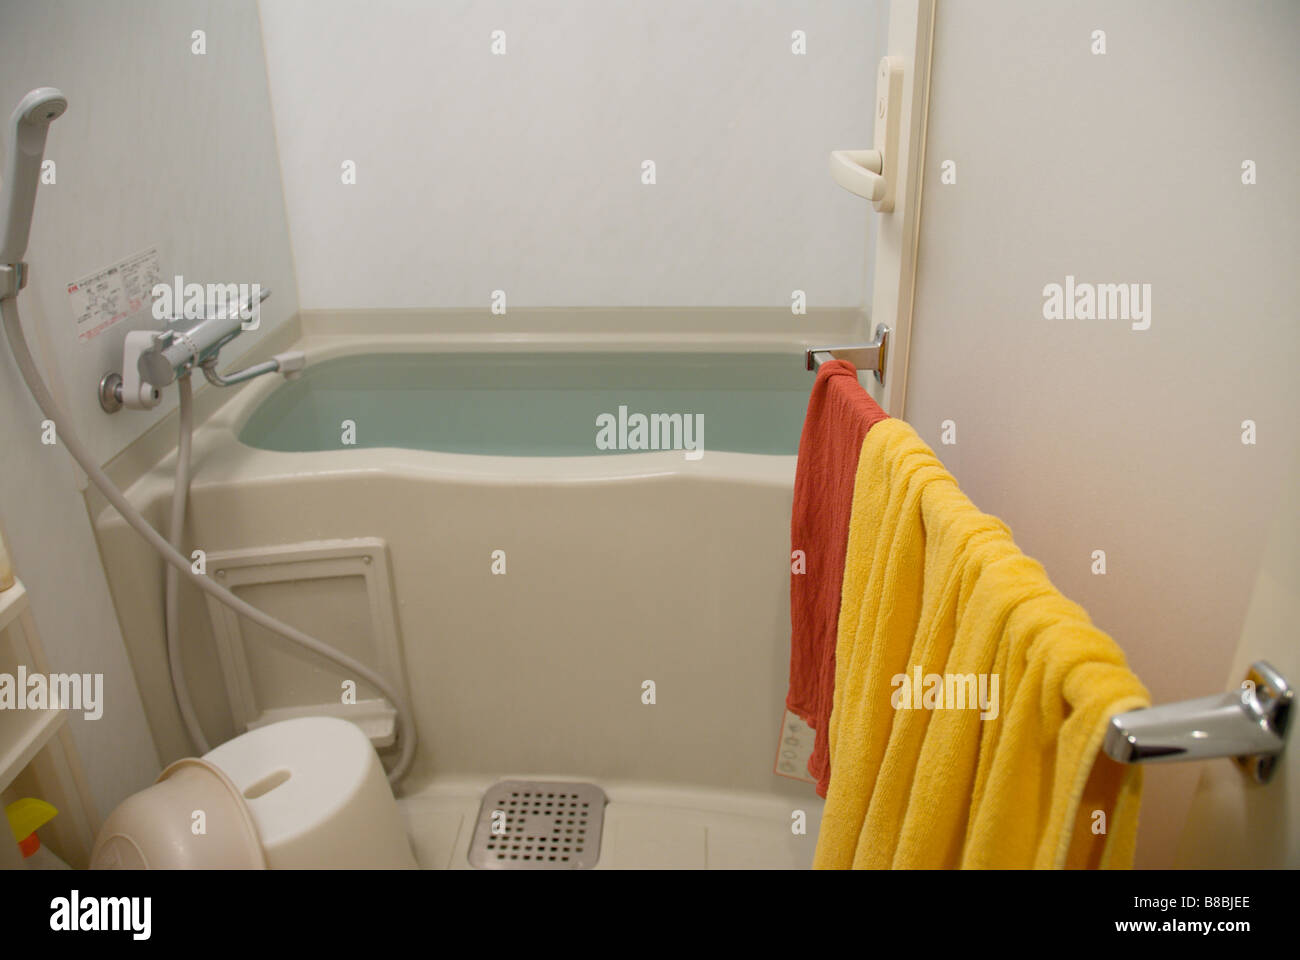 A Full Tub In A Typical Modern Japanese Unit Bathroom In A Tokyo Stock Photo Royalty Free Image